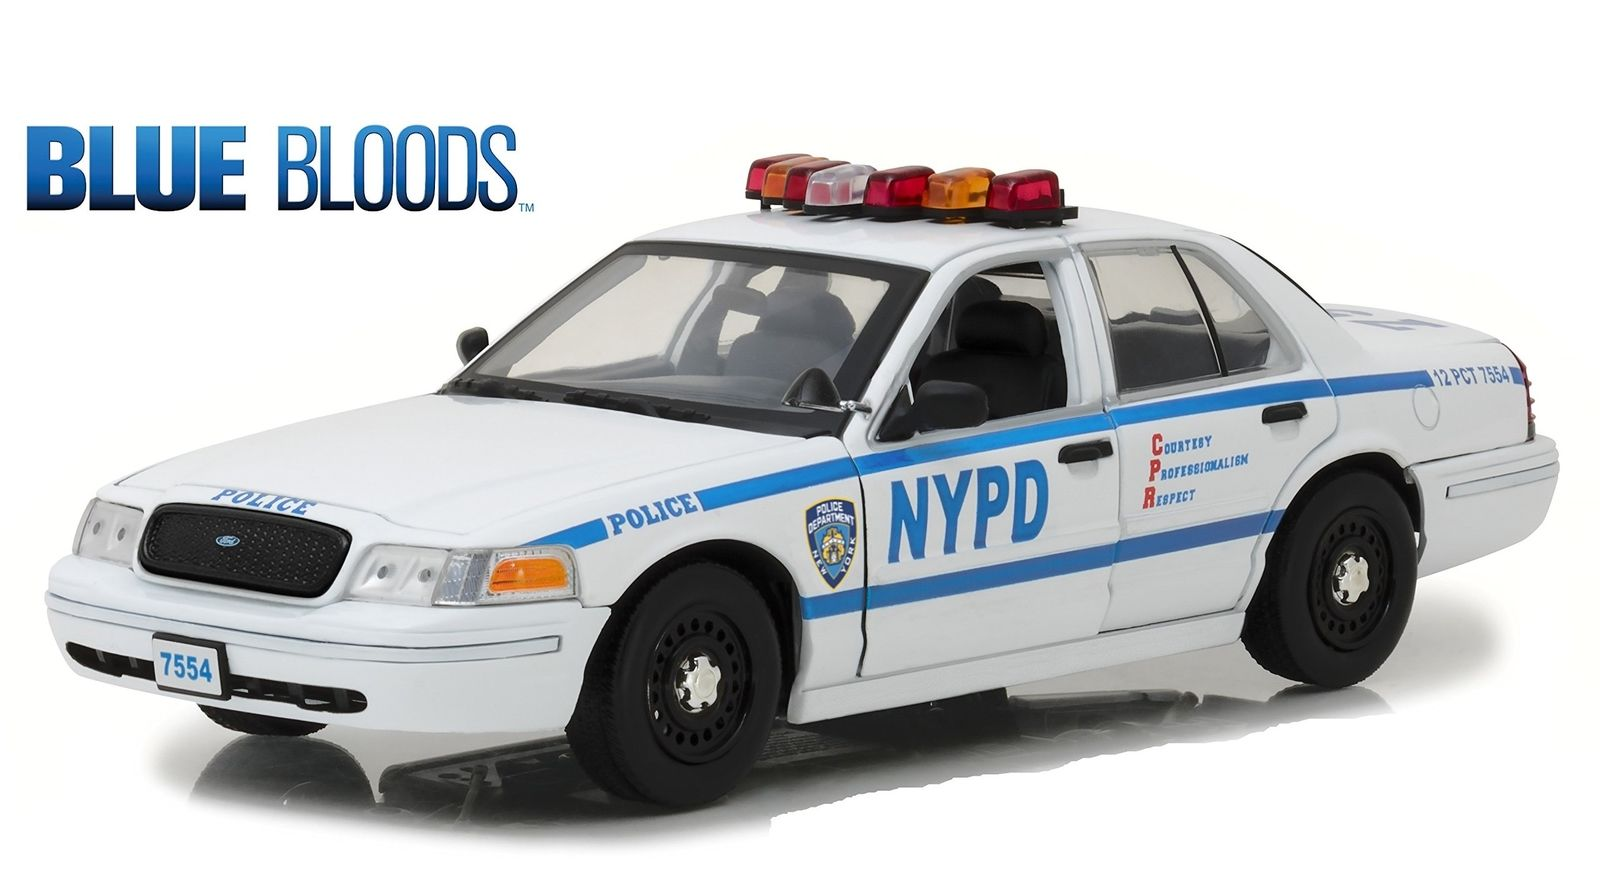 Voiture FORD CROWN VICTORIA 2001 NYPD NEW YORK POLICE DEPARTMENT BLUE BLOODS NYPD NEW YORK POLICE DEPARTMENT 1/18